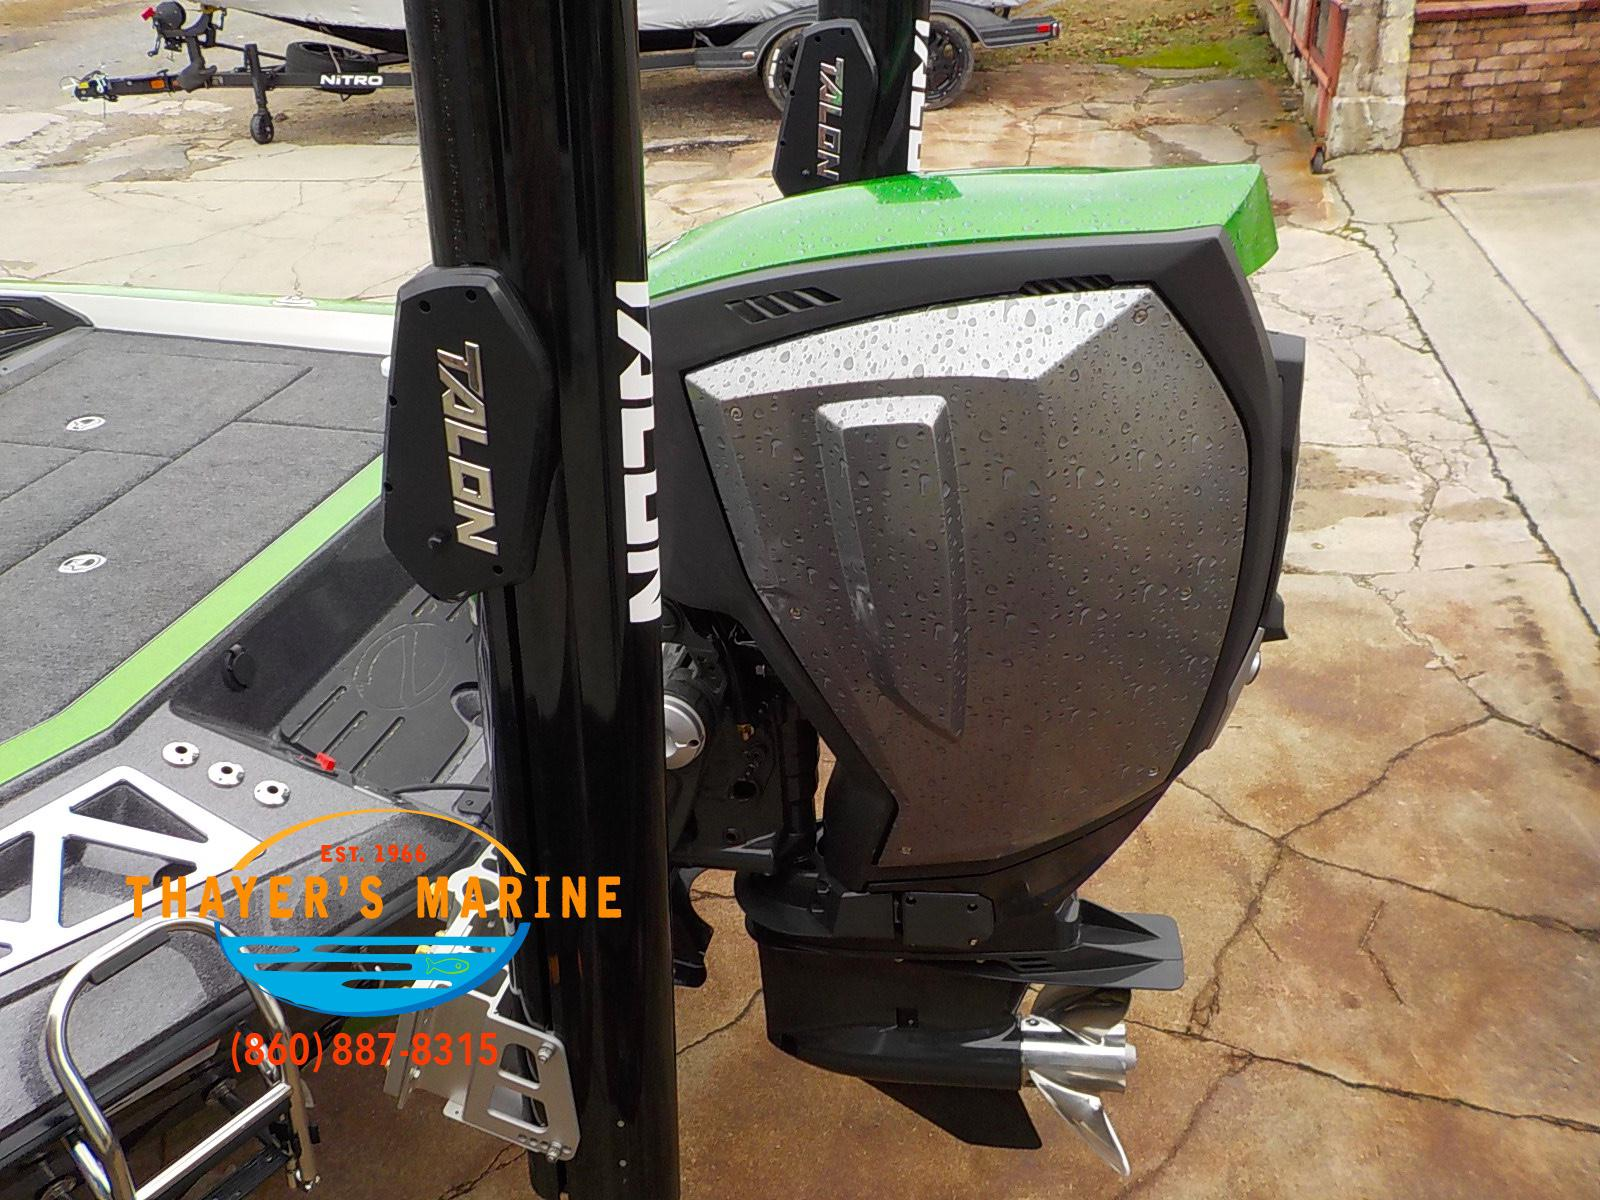 2019 Ranger Z520L for sale in Norwich, CT  Thayer's Marine Inc